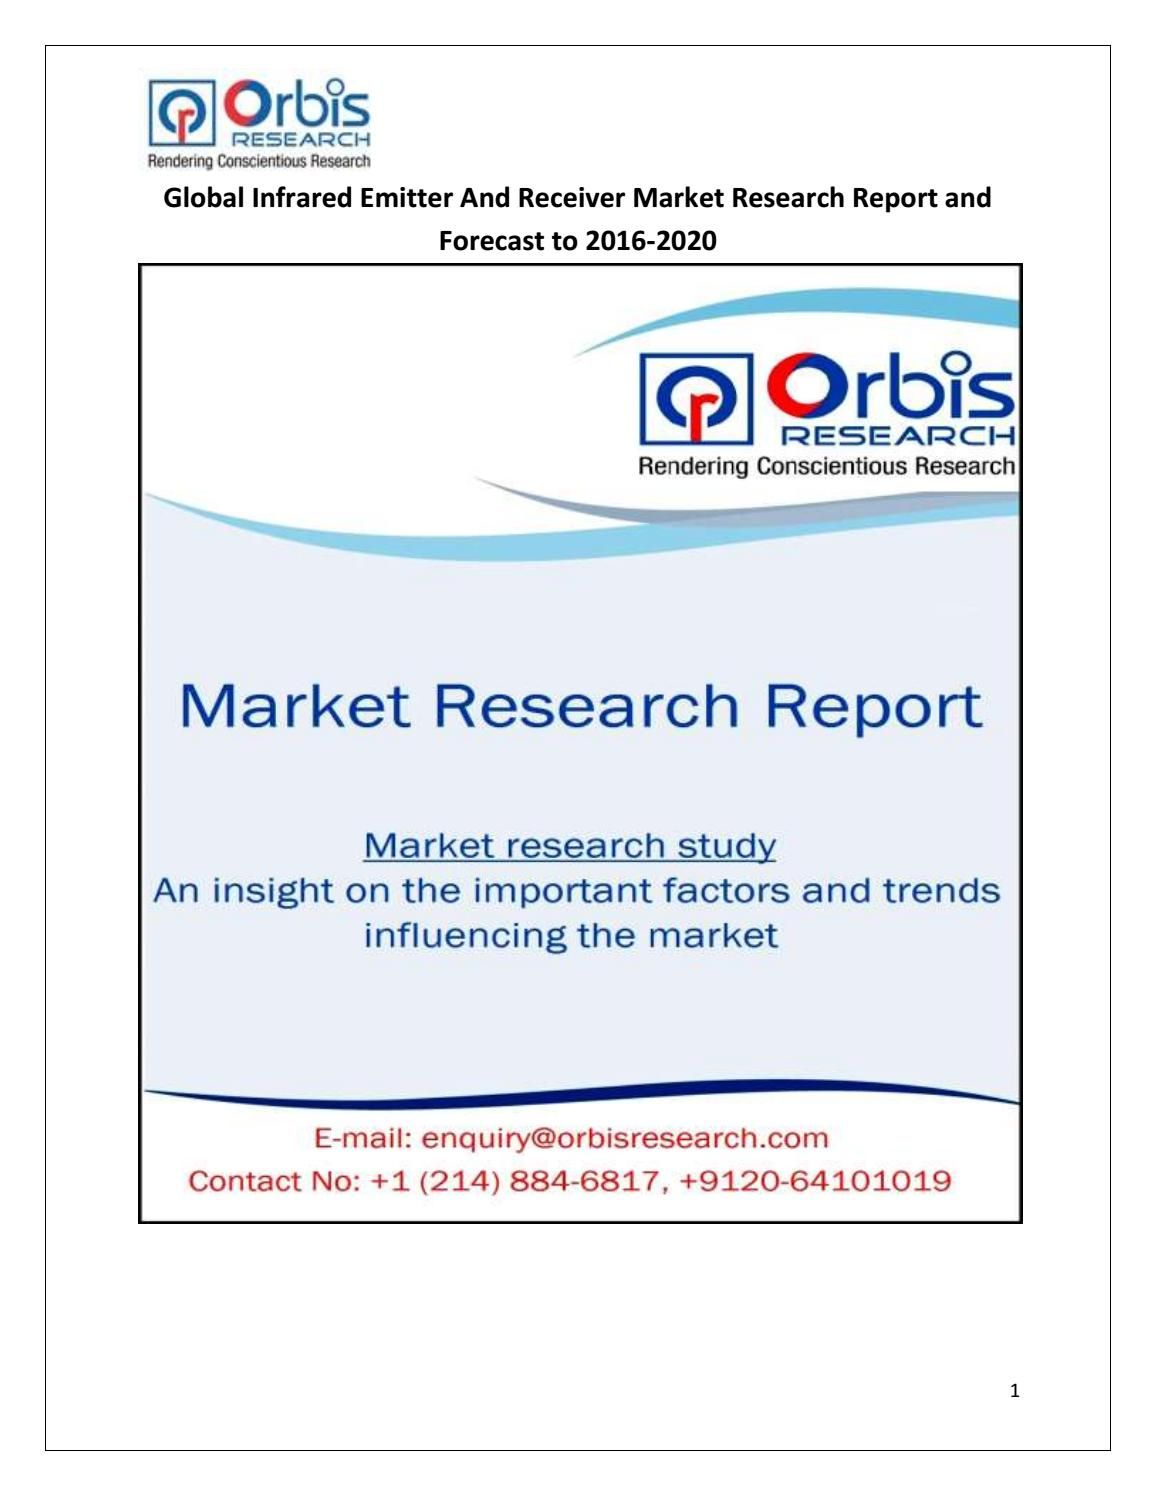 Global Infrared Emitter And Receiver Market @ http://www.orbisresearch.com/reports/index/global-infrared-emitter-and-receiver-market-research-report-and-forecast-to-2016-2020 .